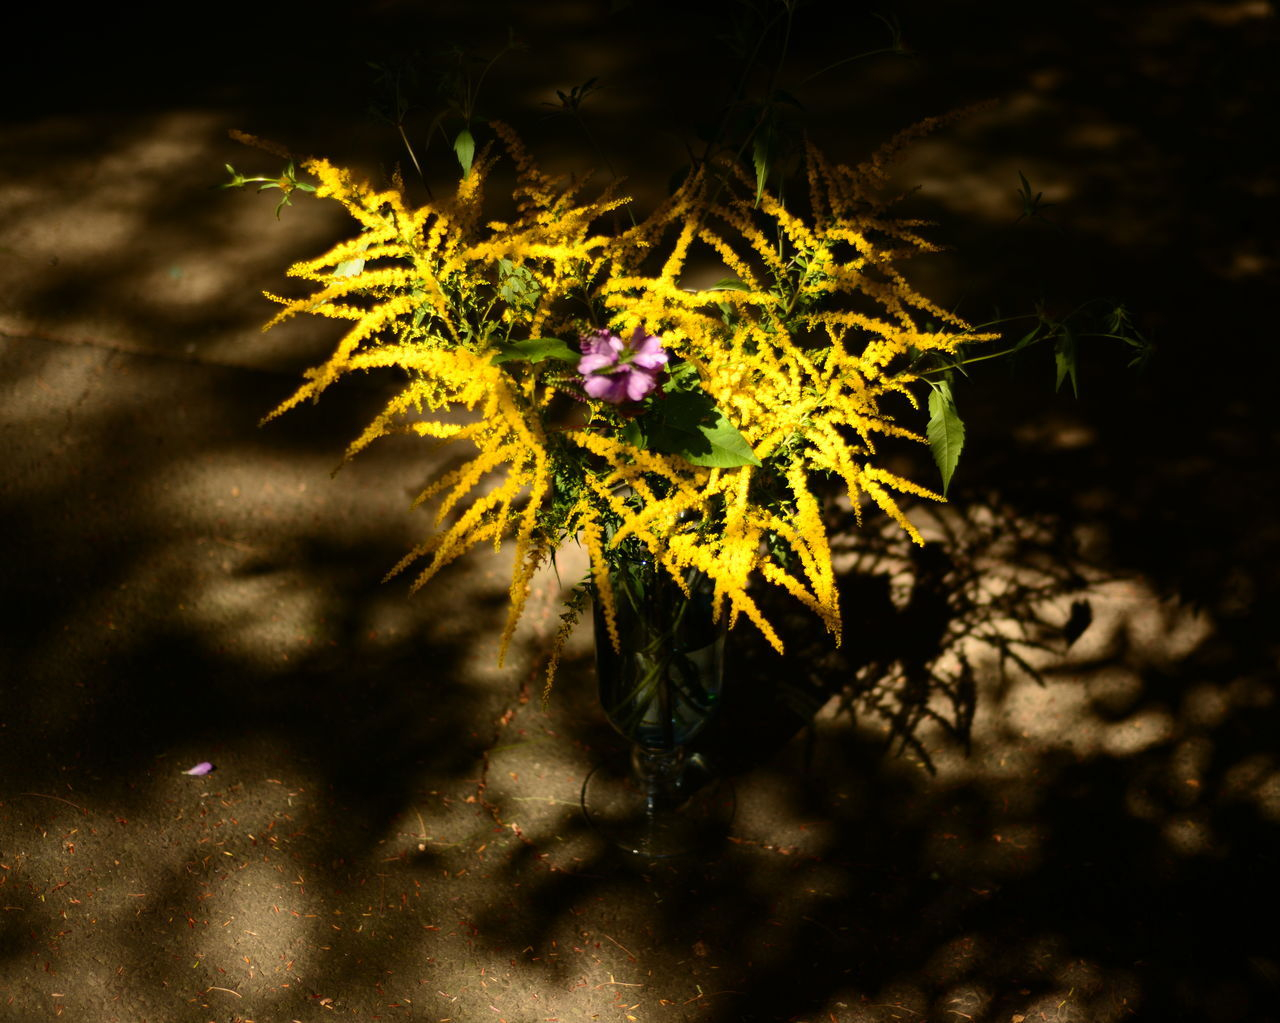 flower, growth, fragility, nature, petal, plant, beauty in nature, flower head, freshness, no people, yellow, outdoors, day, close-up, blooming